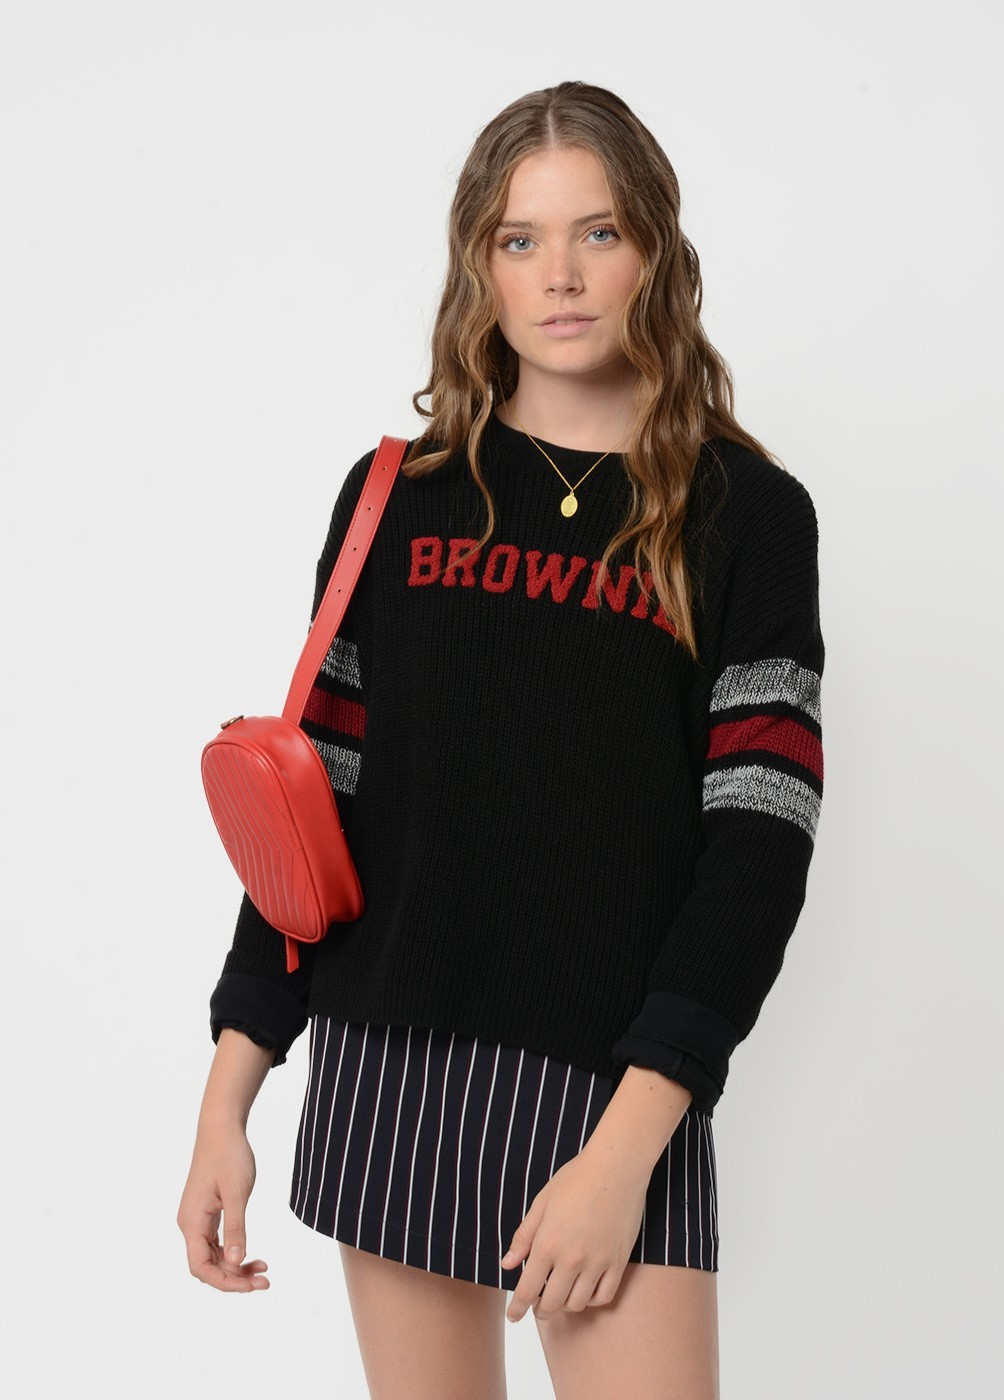 GARNET BROWNIE EMBROIDERED SWEATSHIRT